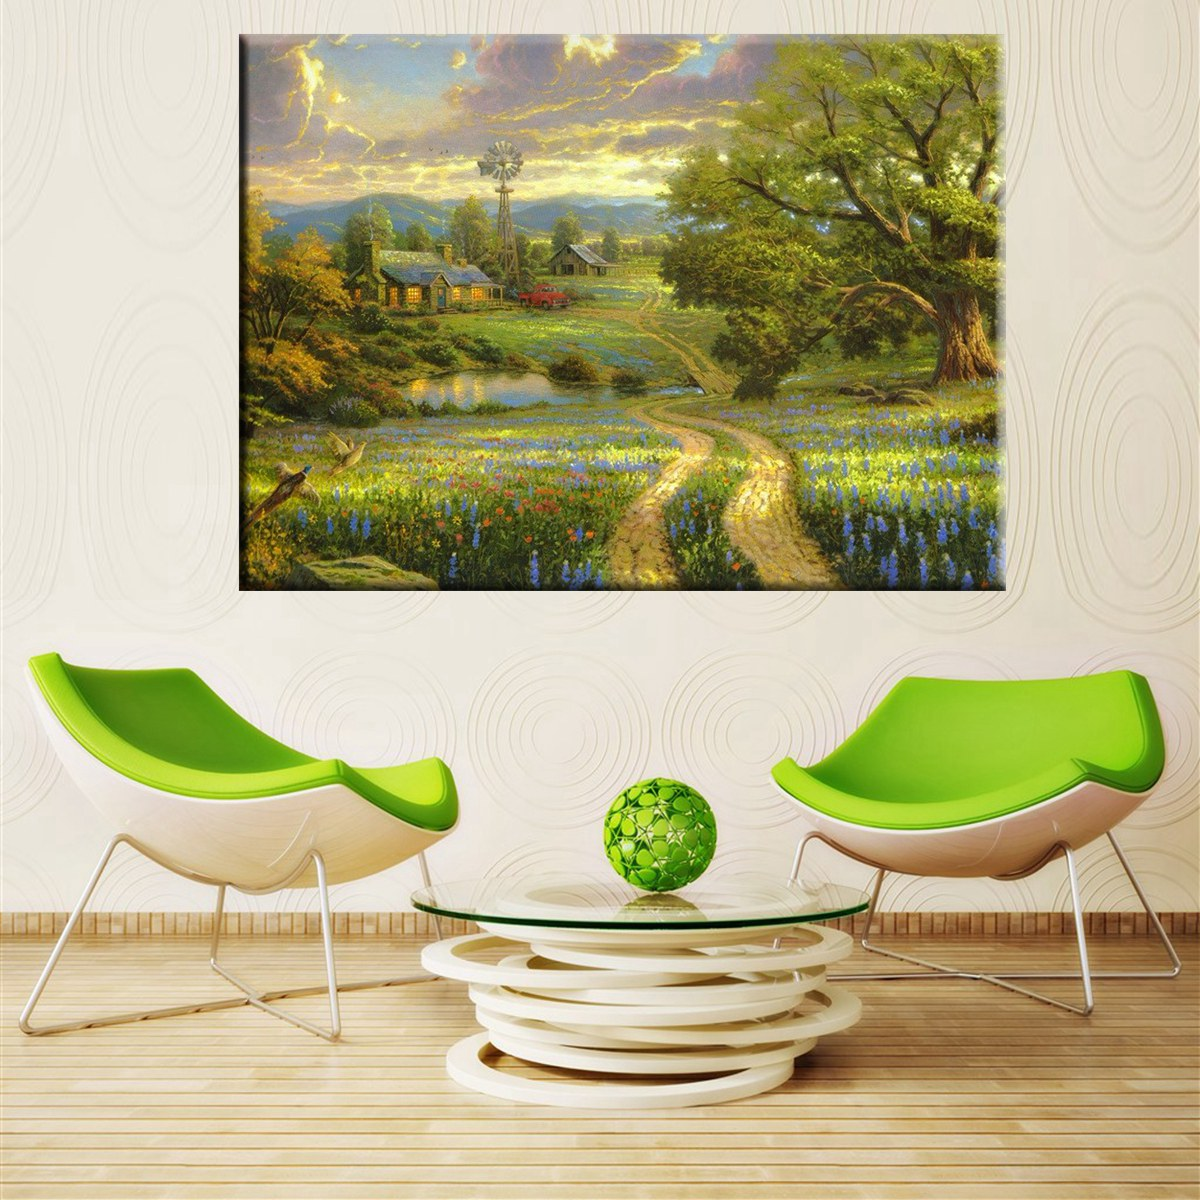 Wall Art Posters and Prints Countryside Farm Pastoral Flowers Field Landscape Painting Prints on Canvas Home Decoration Dropship